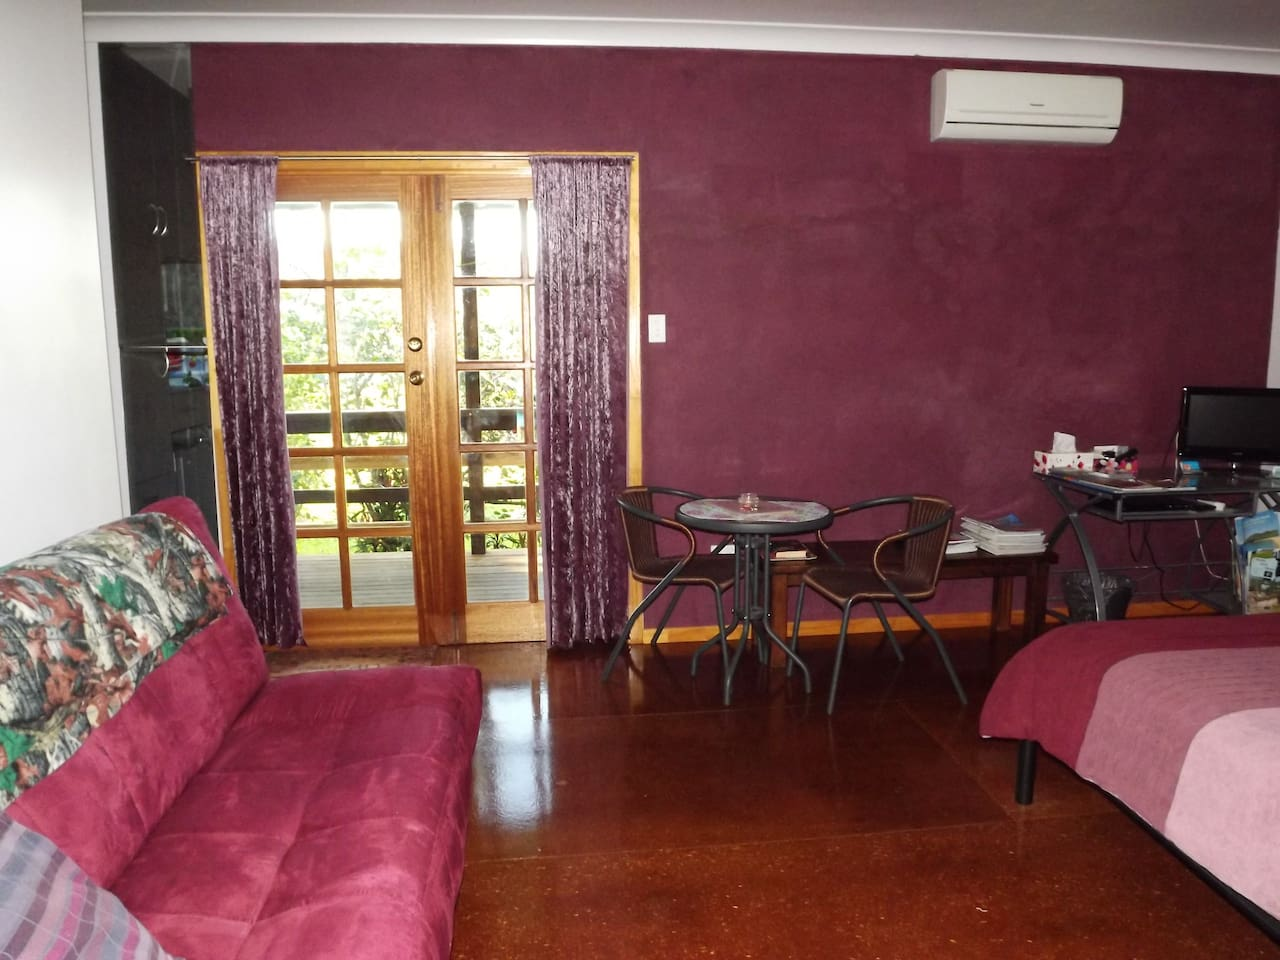 Pink Room Accommodates up to 4